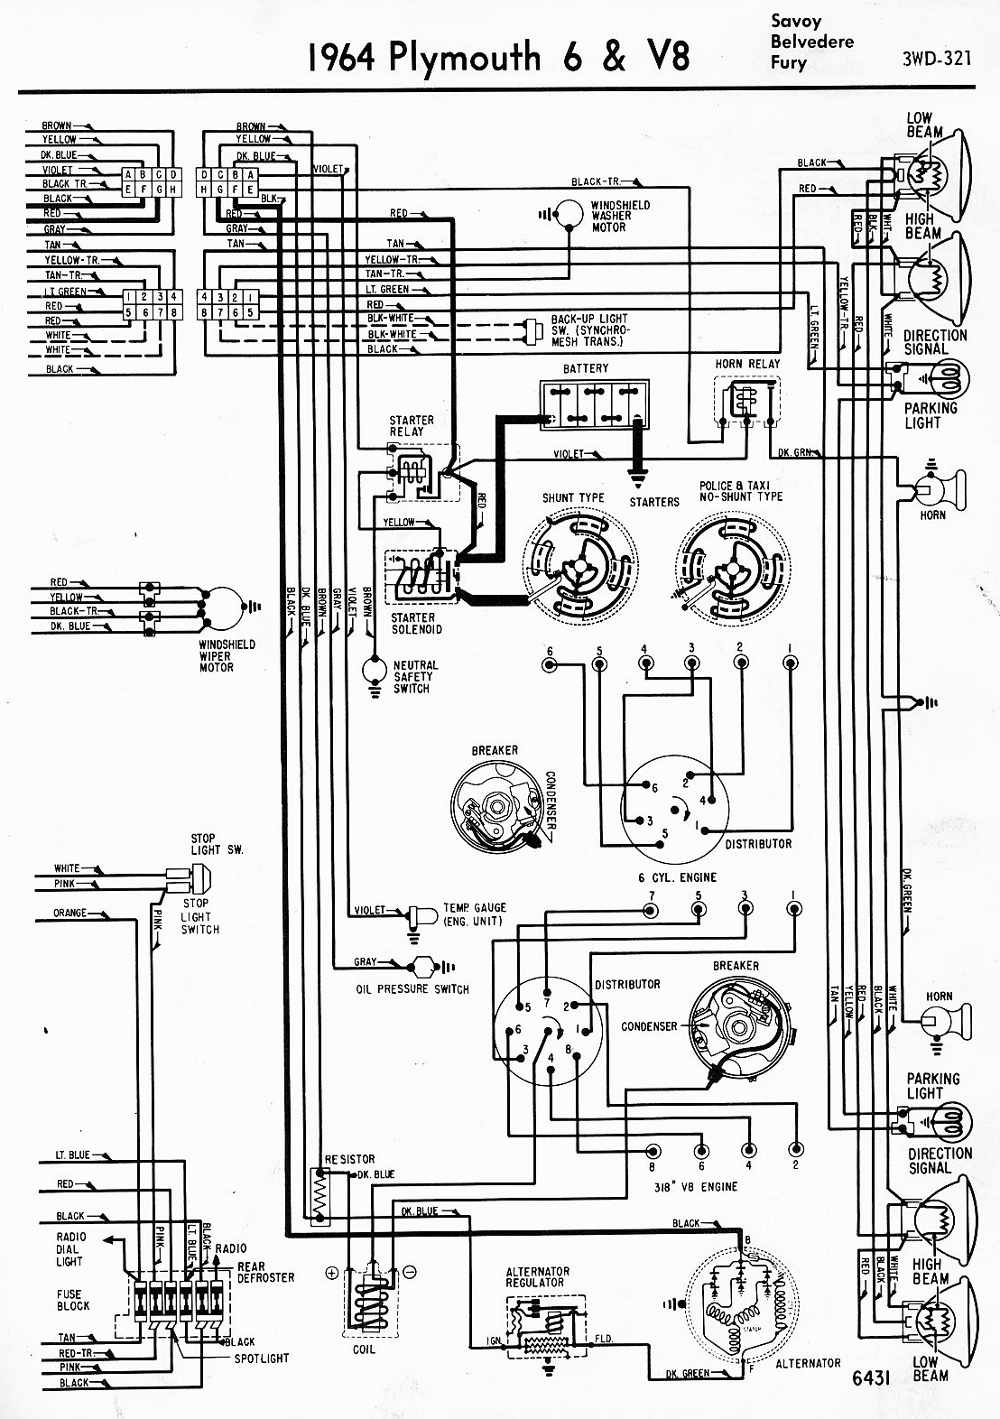 1971 plymouth satellite engine wiring diagram wiring library 1973 Dodge Challenger Wiring Diagram 1966 plymouth fury 3 wiring diagram diy enthusiasts wiring diagrams u2022 rh broadwaycomputers us 1967 plymouth